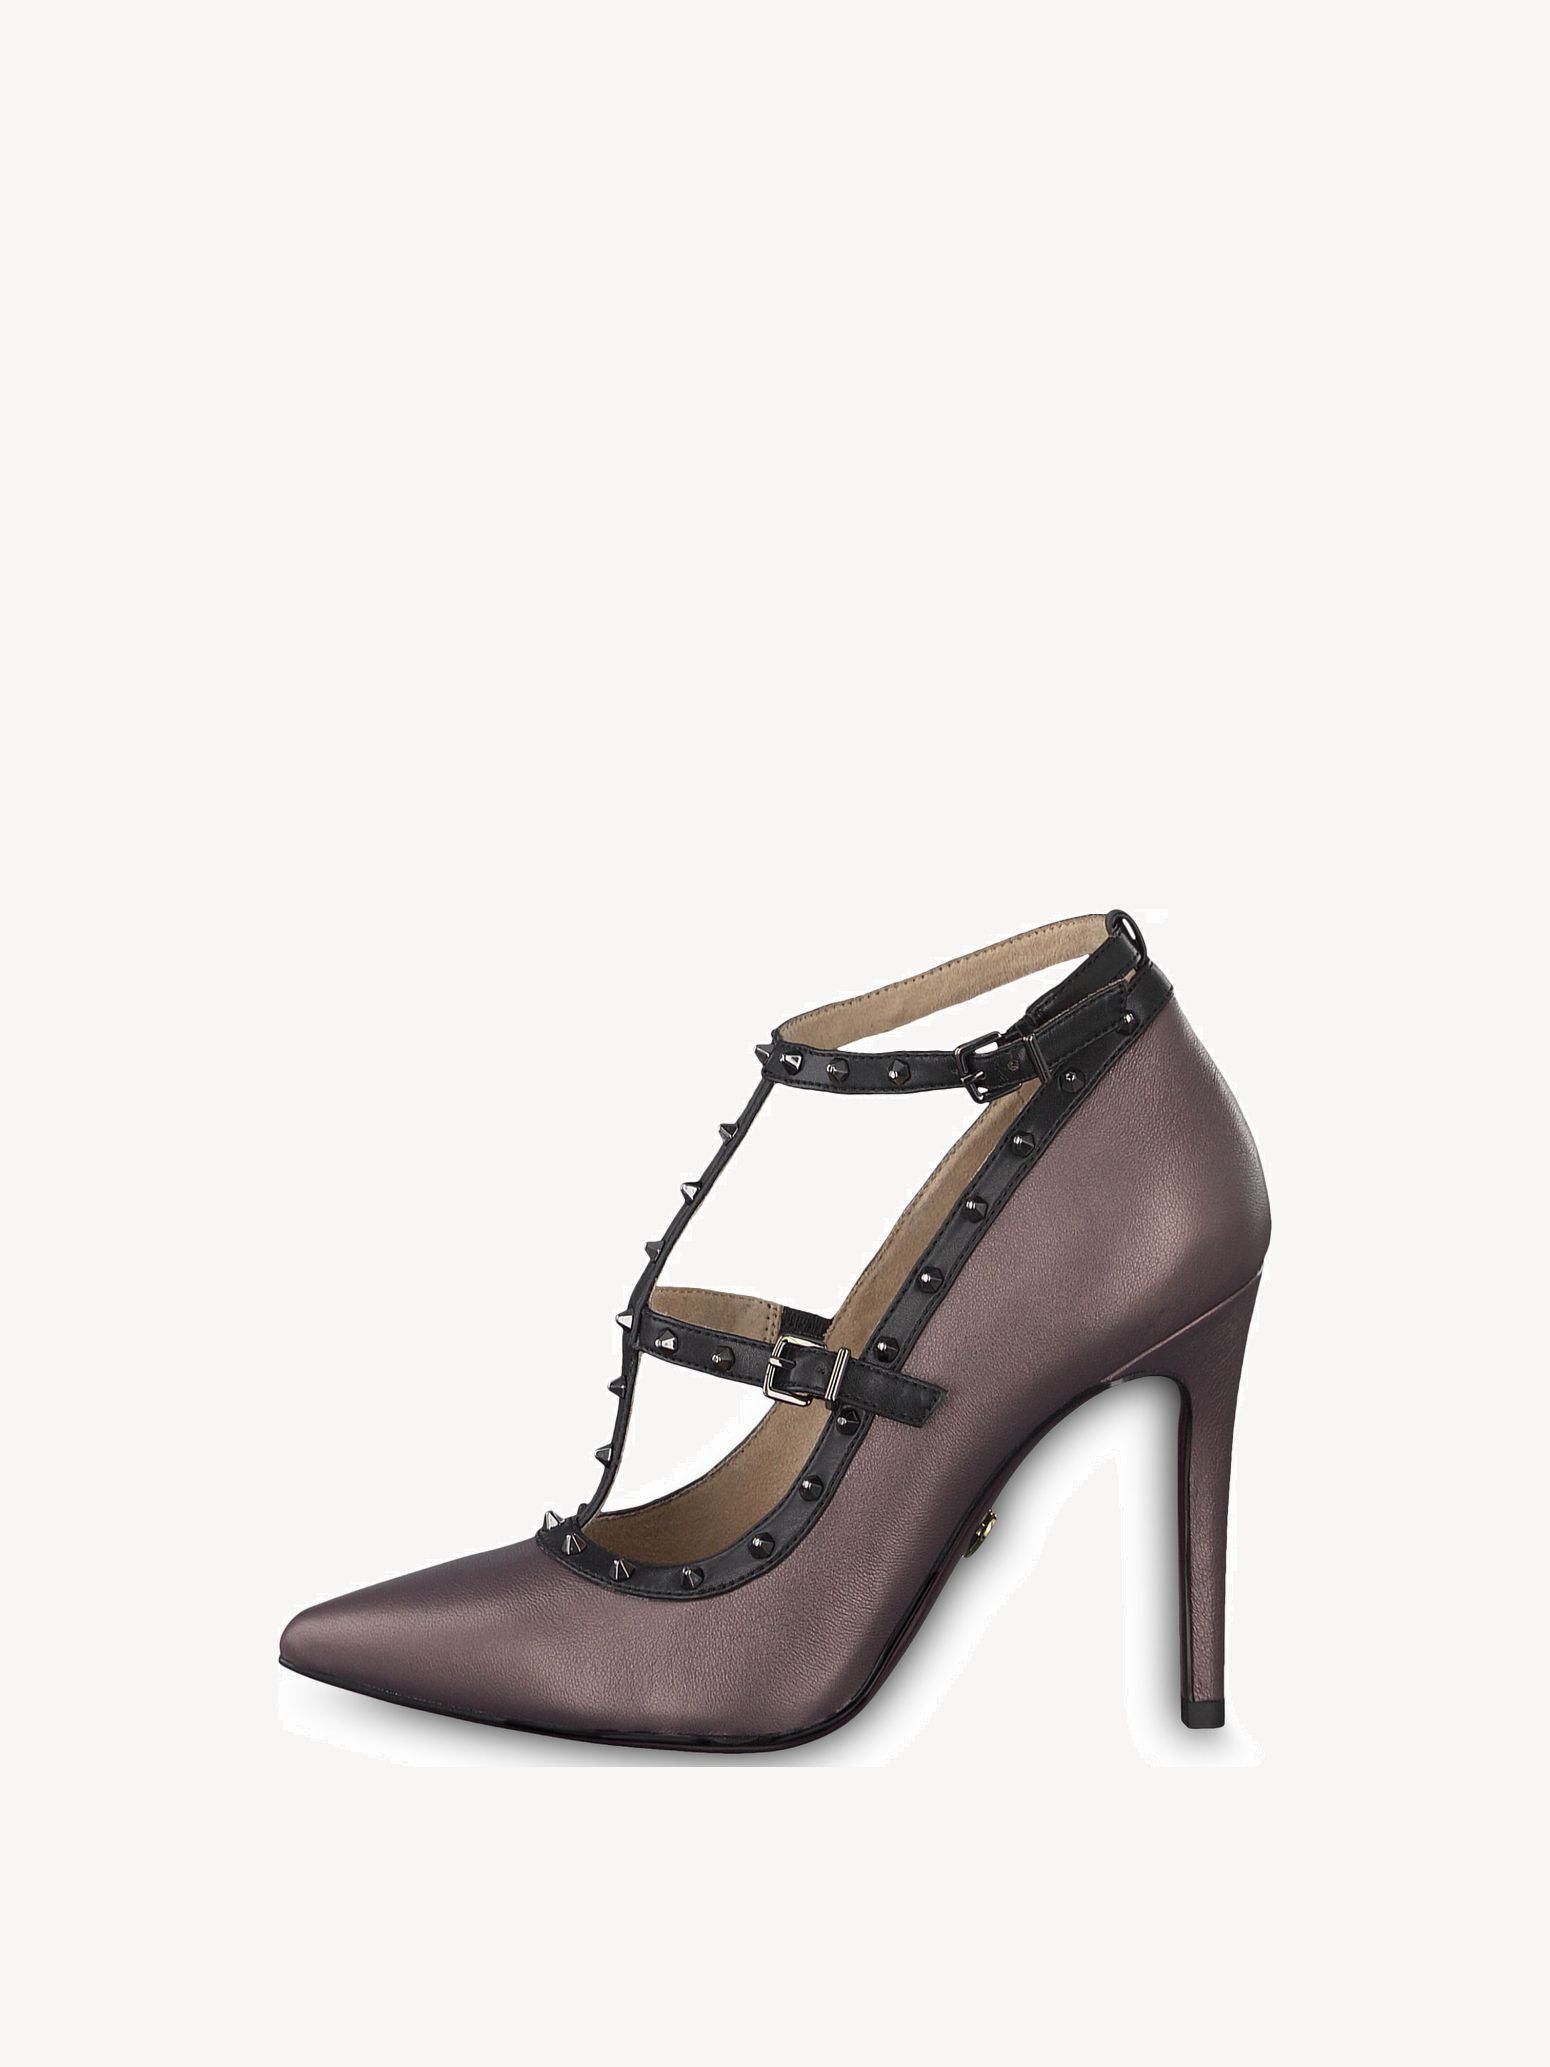 High heel pumps tamaris. Tamaris Women's Heels. 2019 08 19